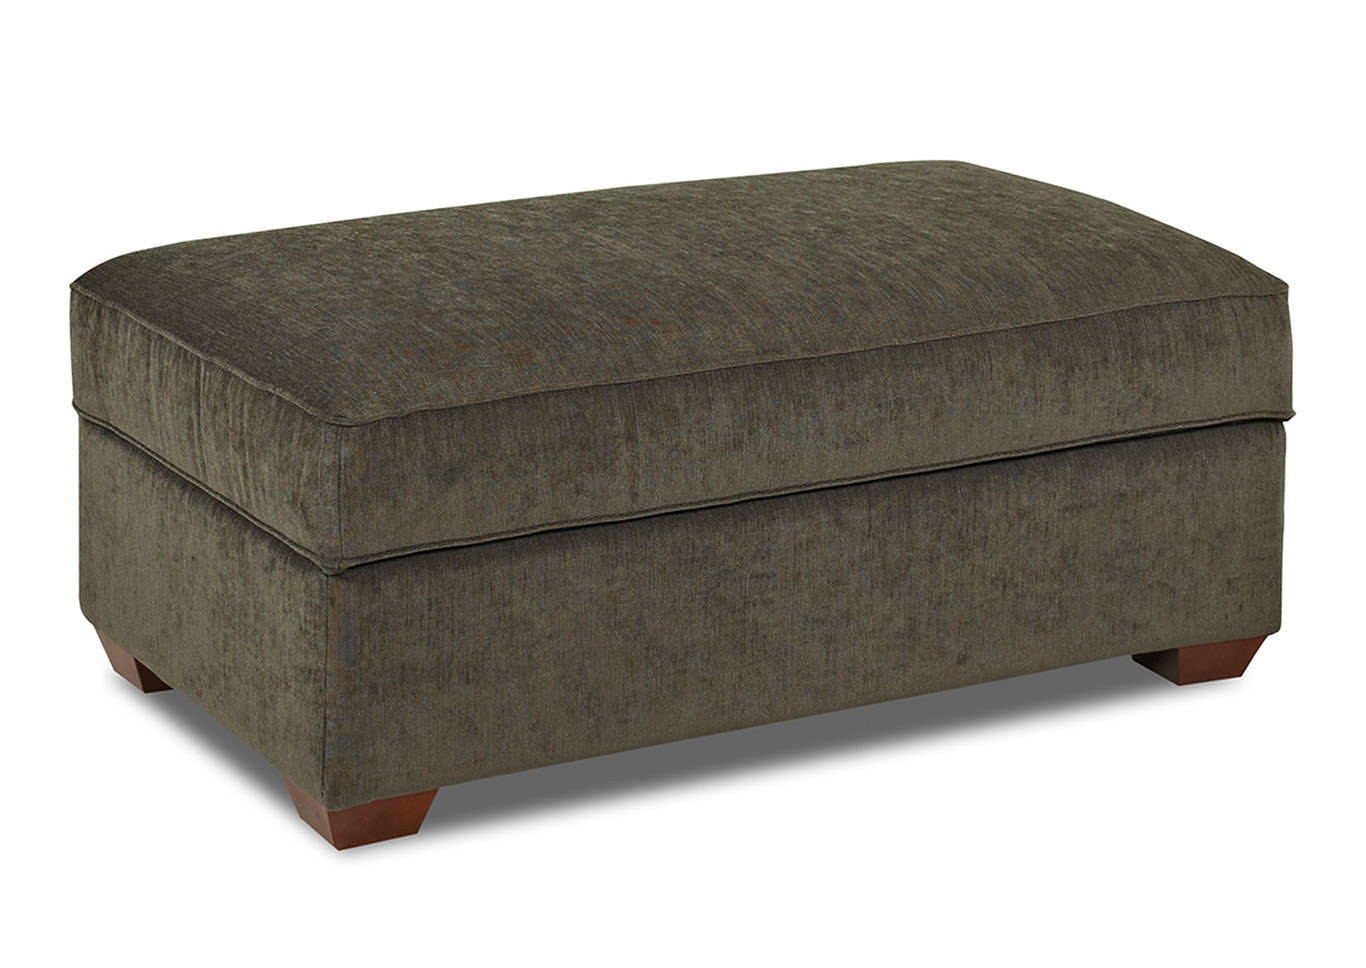 Pantego Stationary Fabric Ottoman,Klaussner Home Furnishings